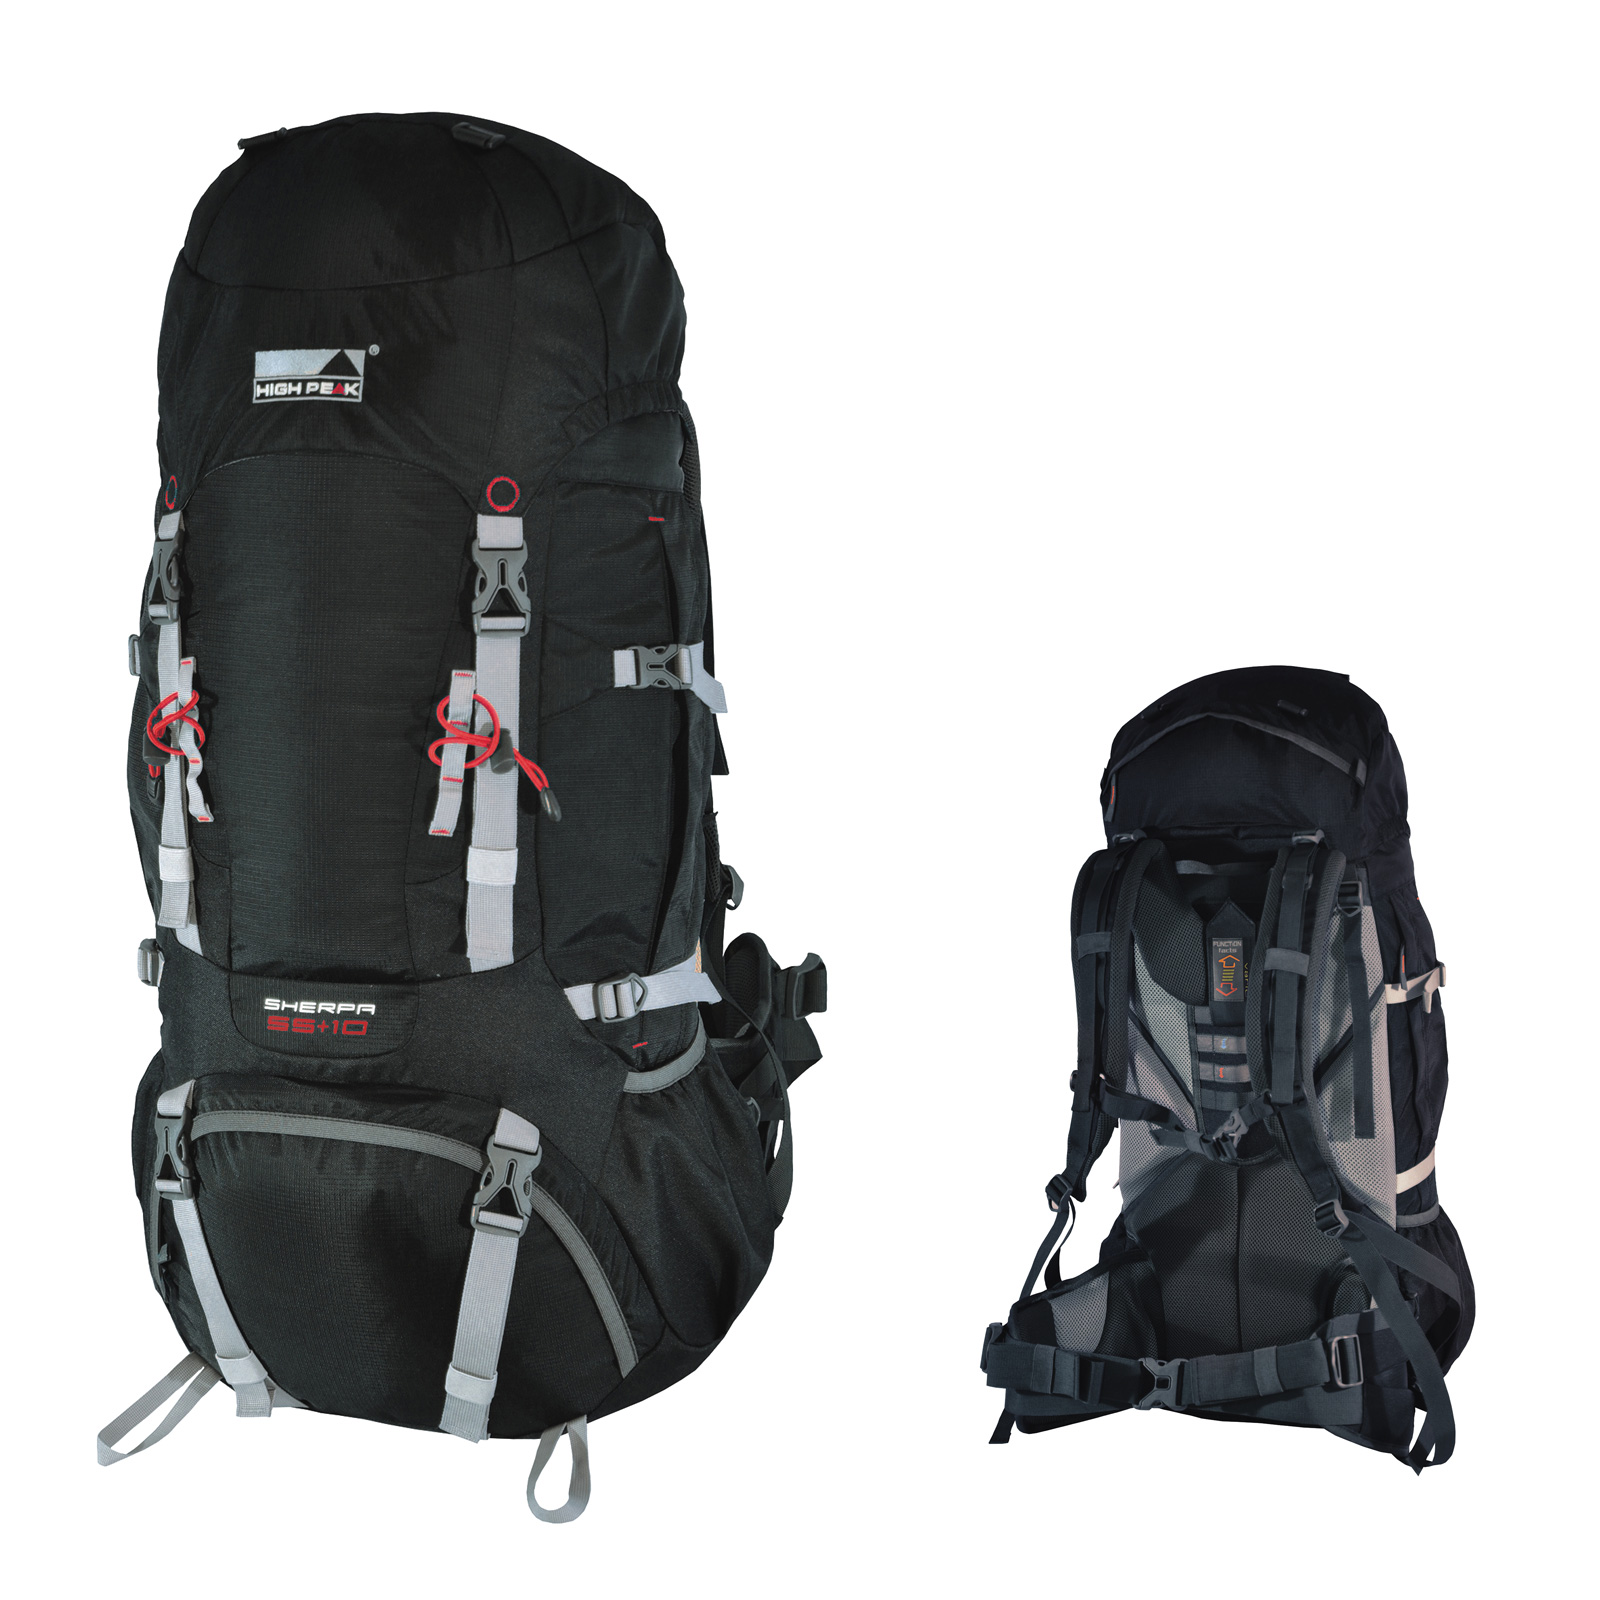 high peak sherpa 65 10 l sac a dos trekking marche rando noir neuf ebay. Black Bedroom Furniture Sets. Home Design Ideas